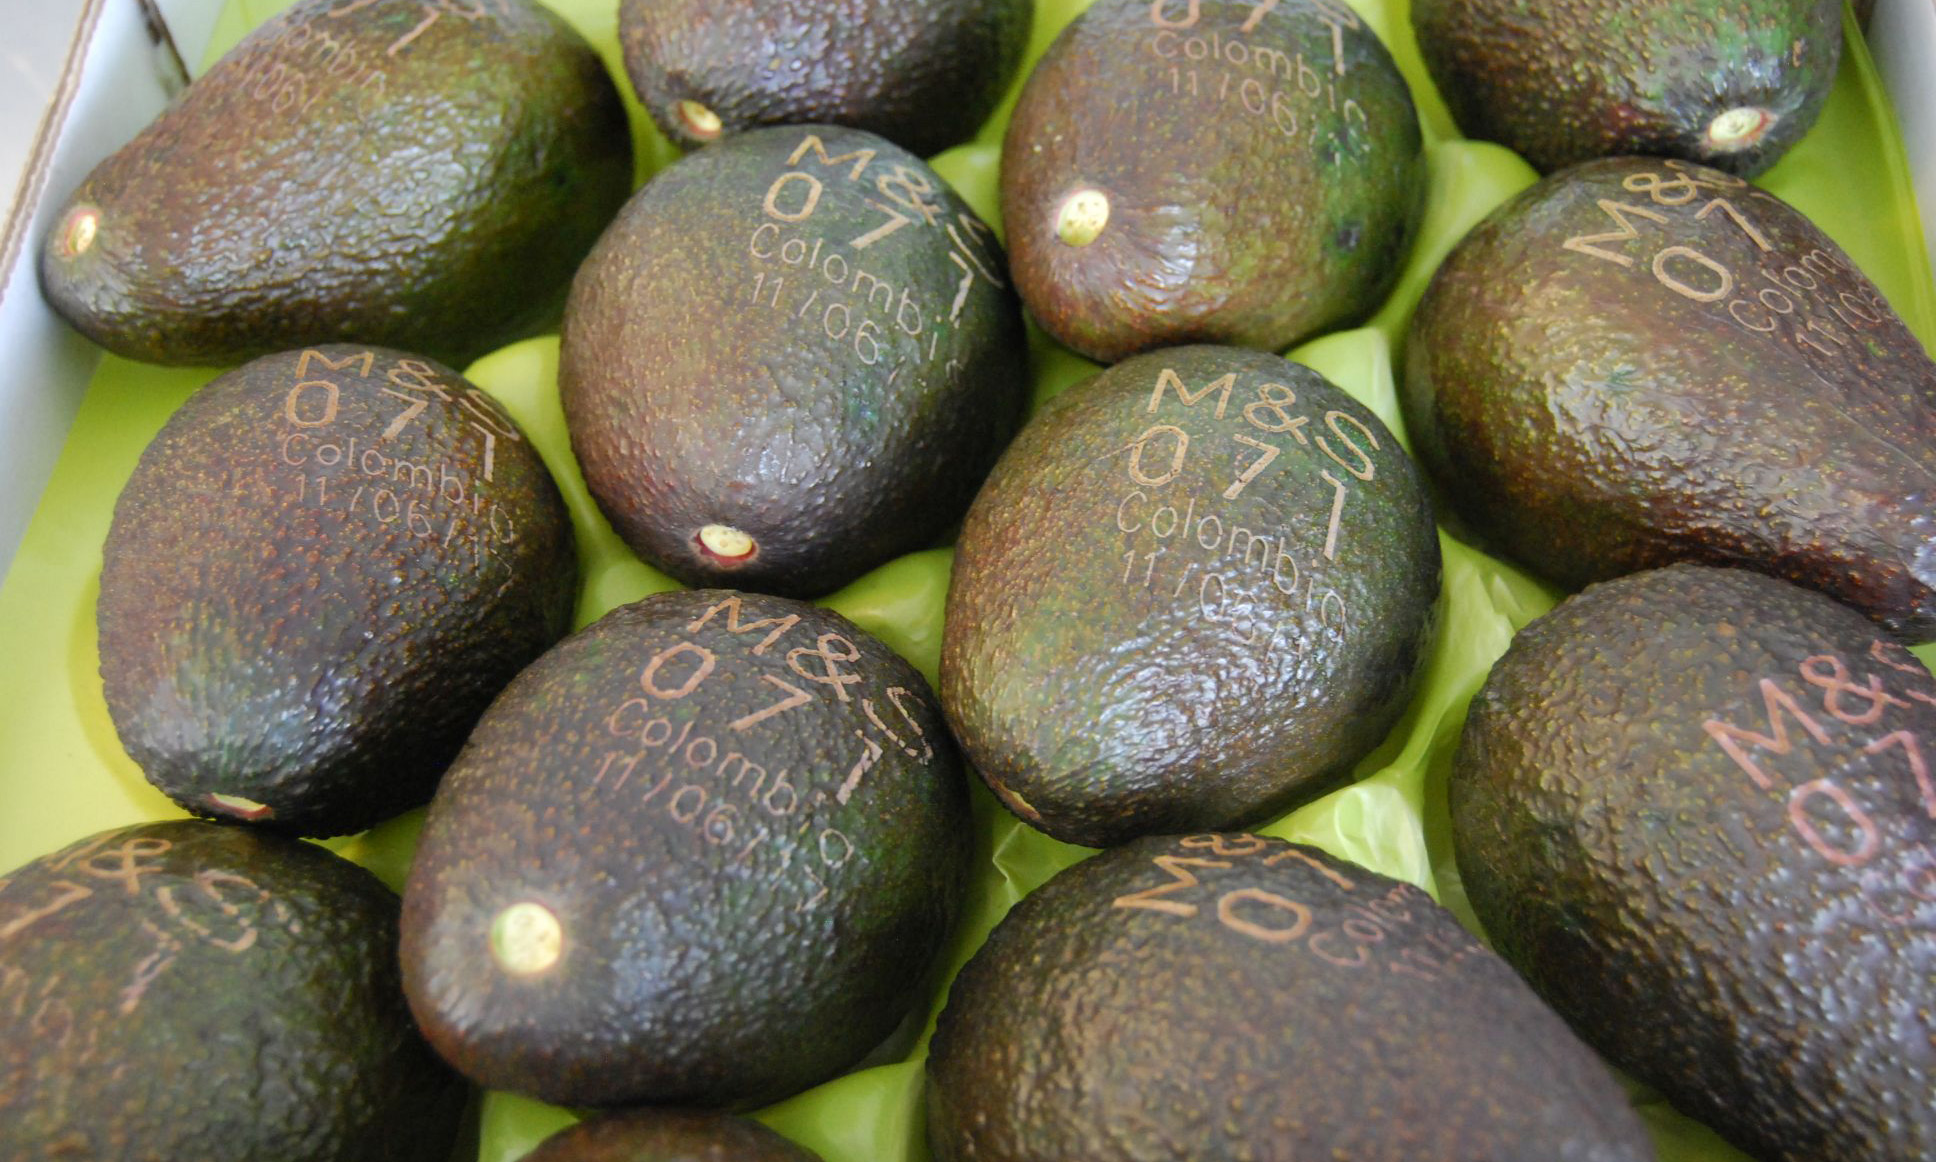 EC: Laser-Printed Avocado Labels Will Reduce Waste One Sticker at a Time